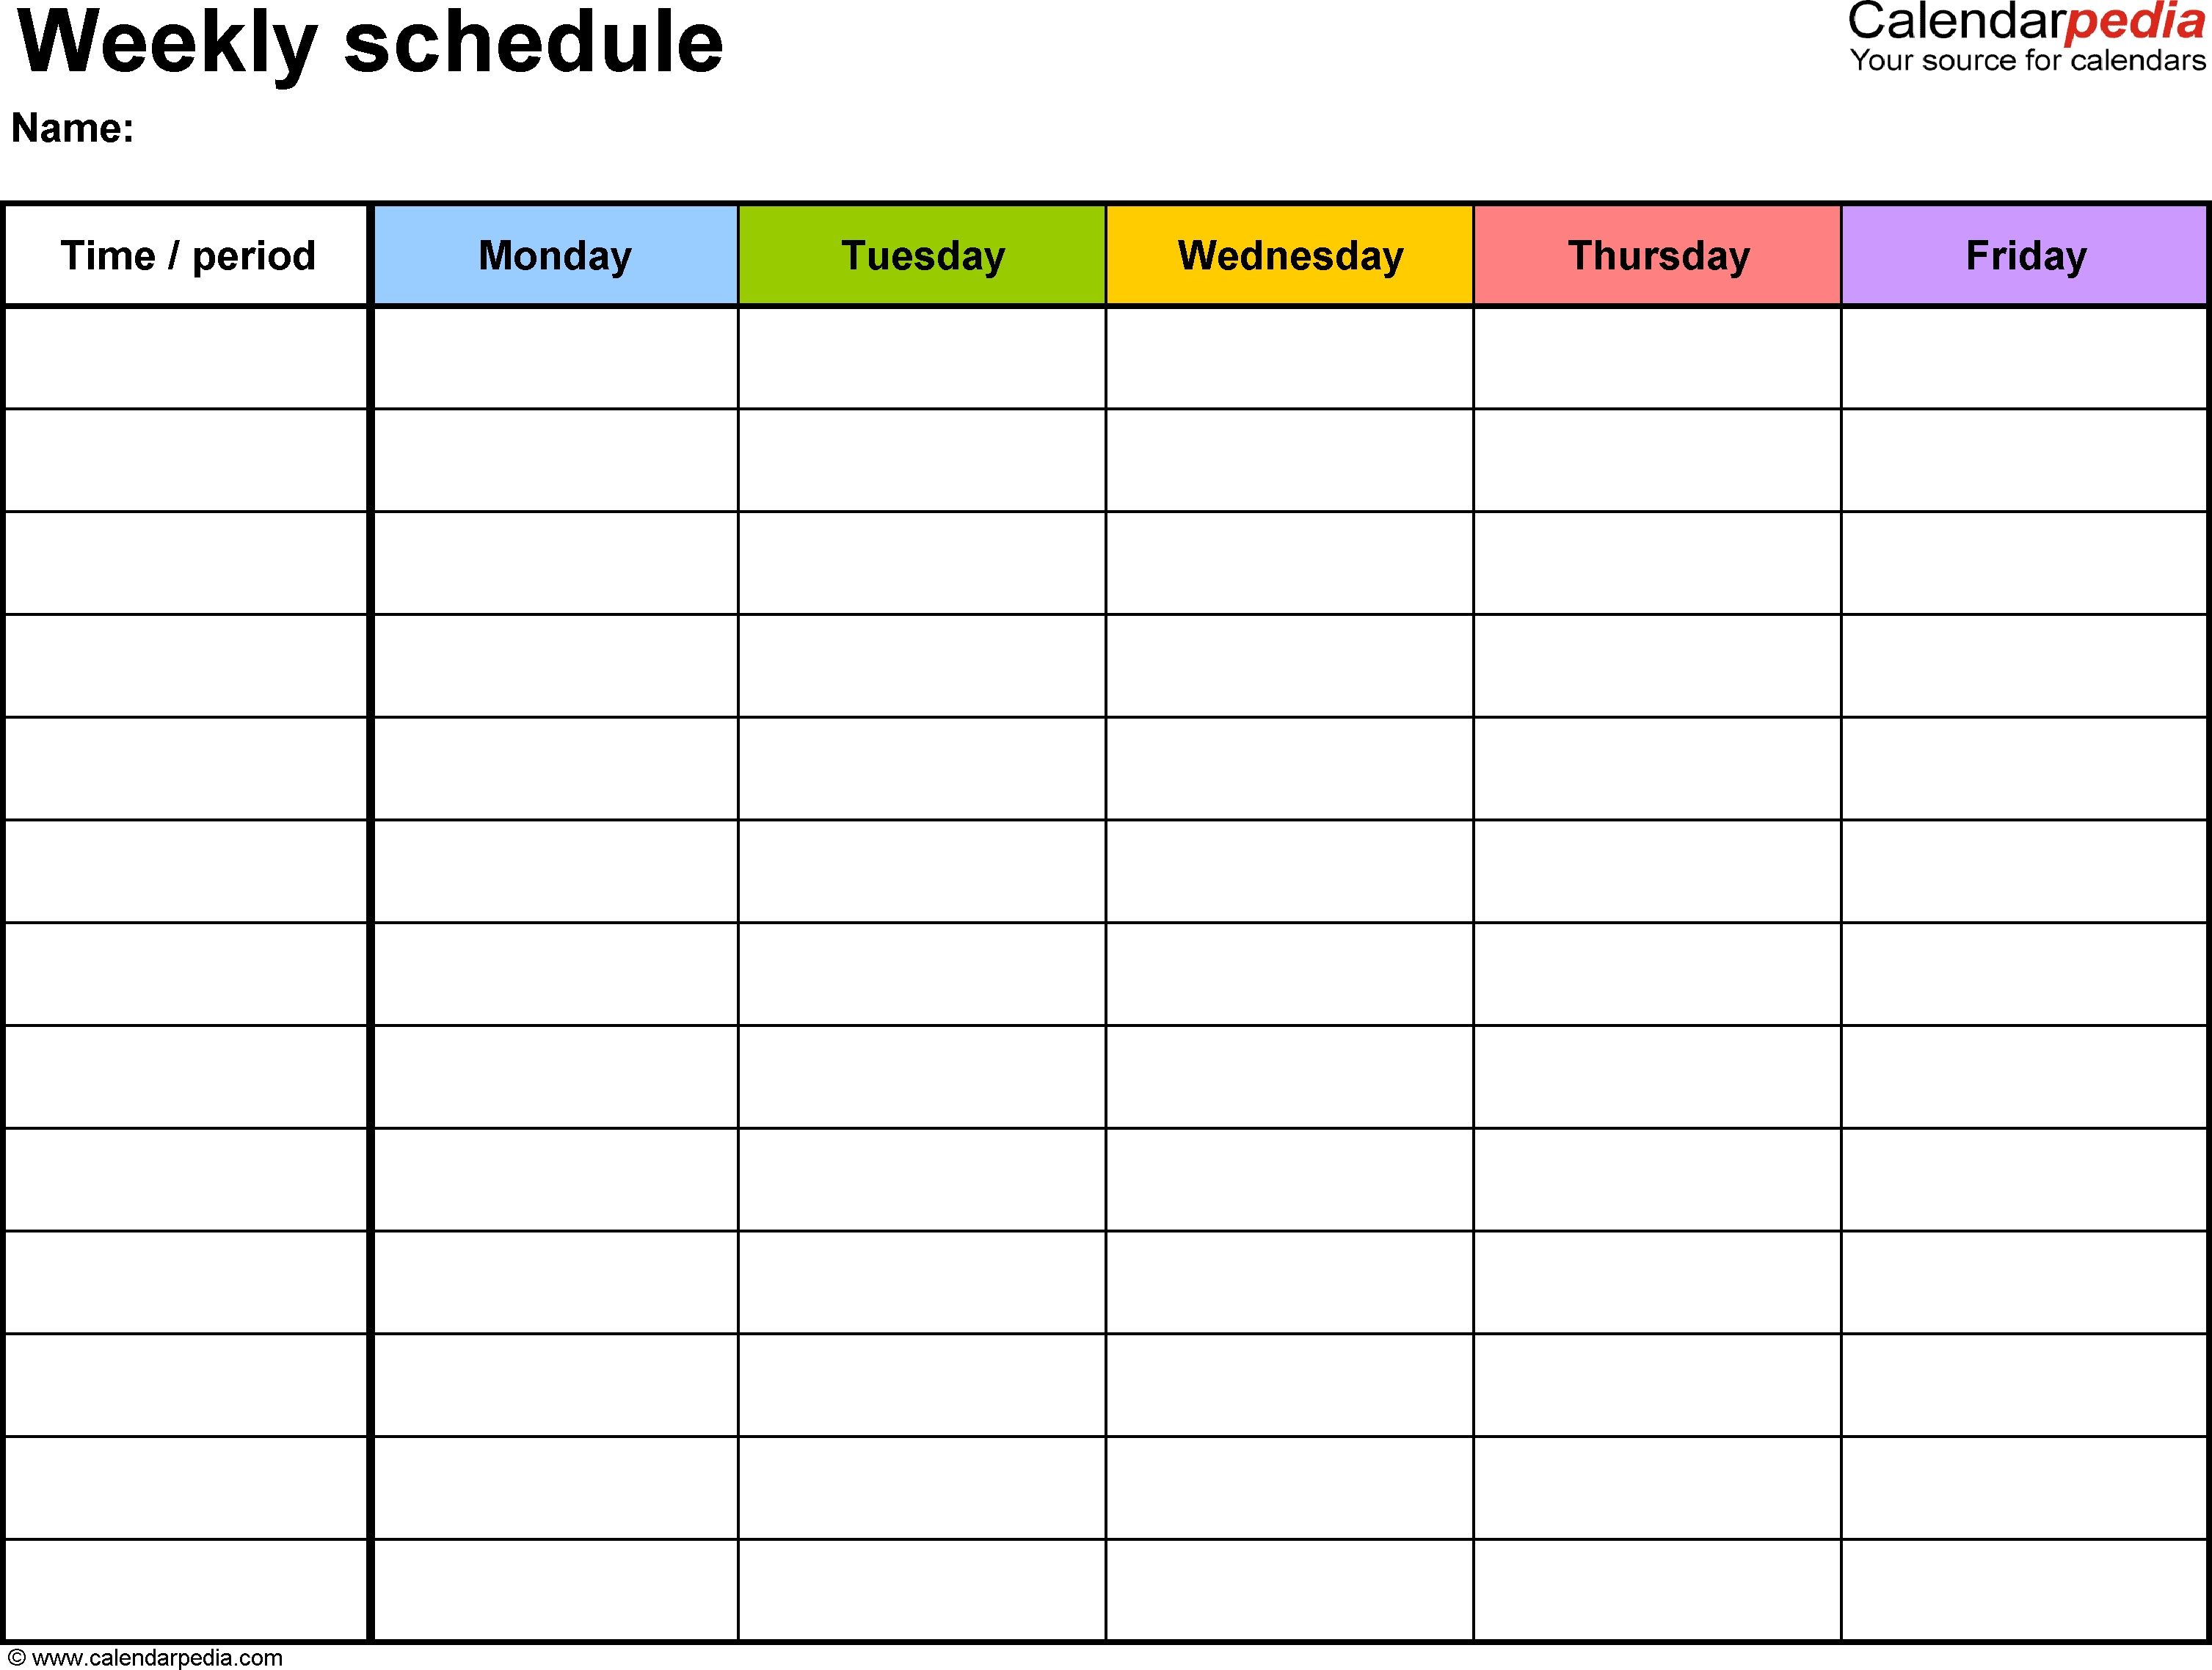 Weekly Schedule Template For Word Version 1: Landscape, 1